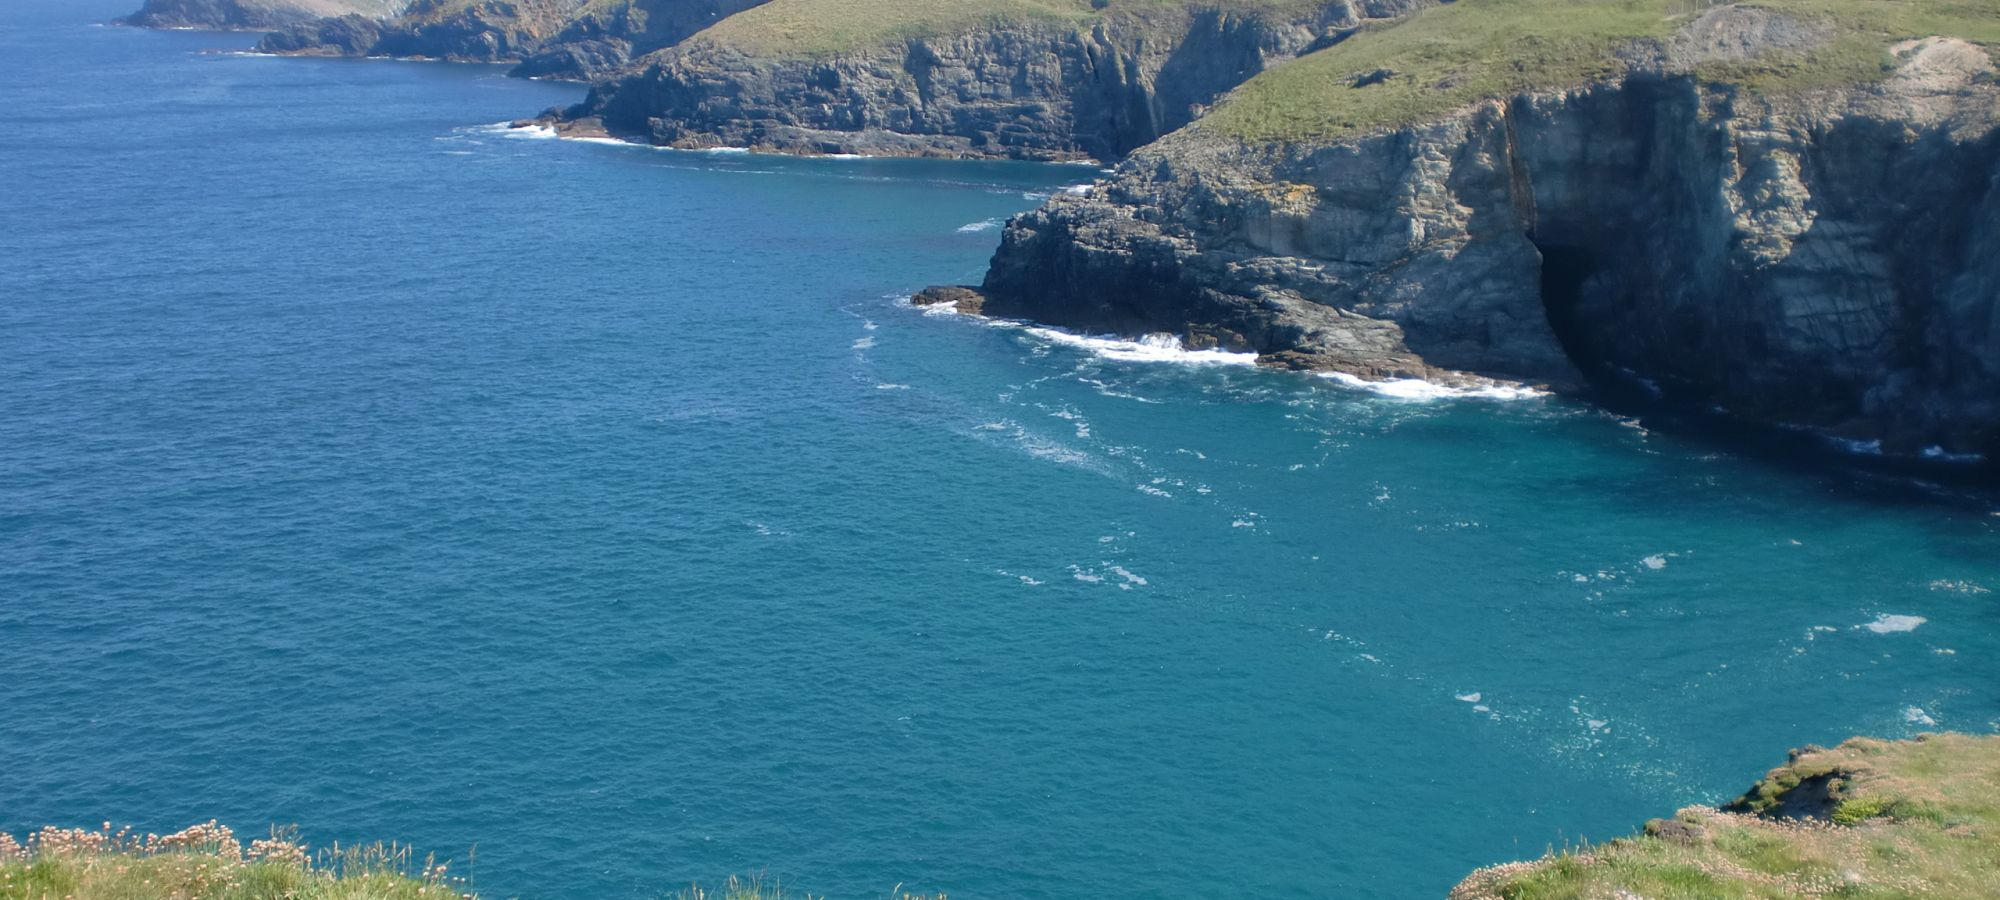 north coast cliffs and blue seas